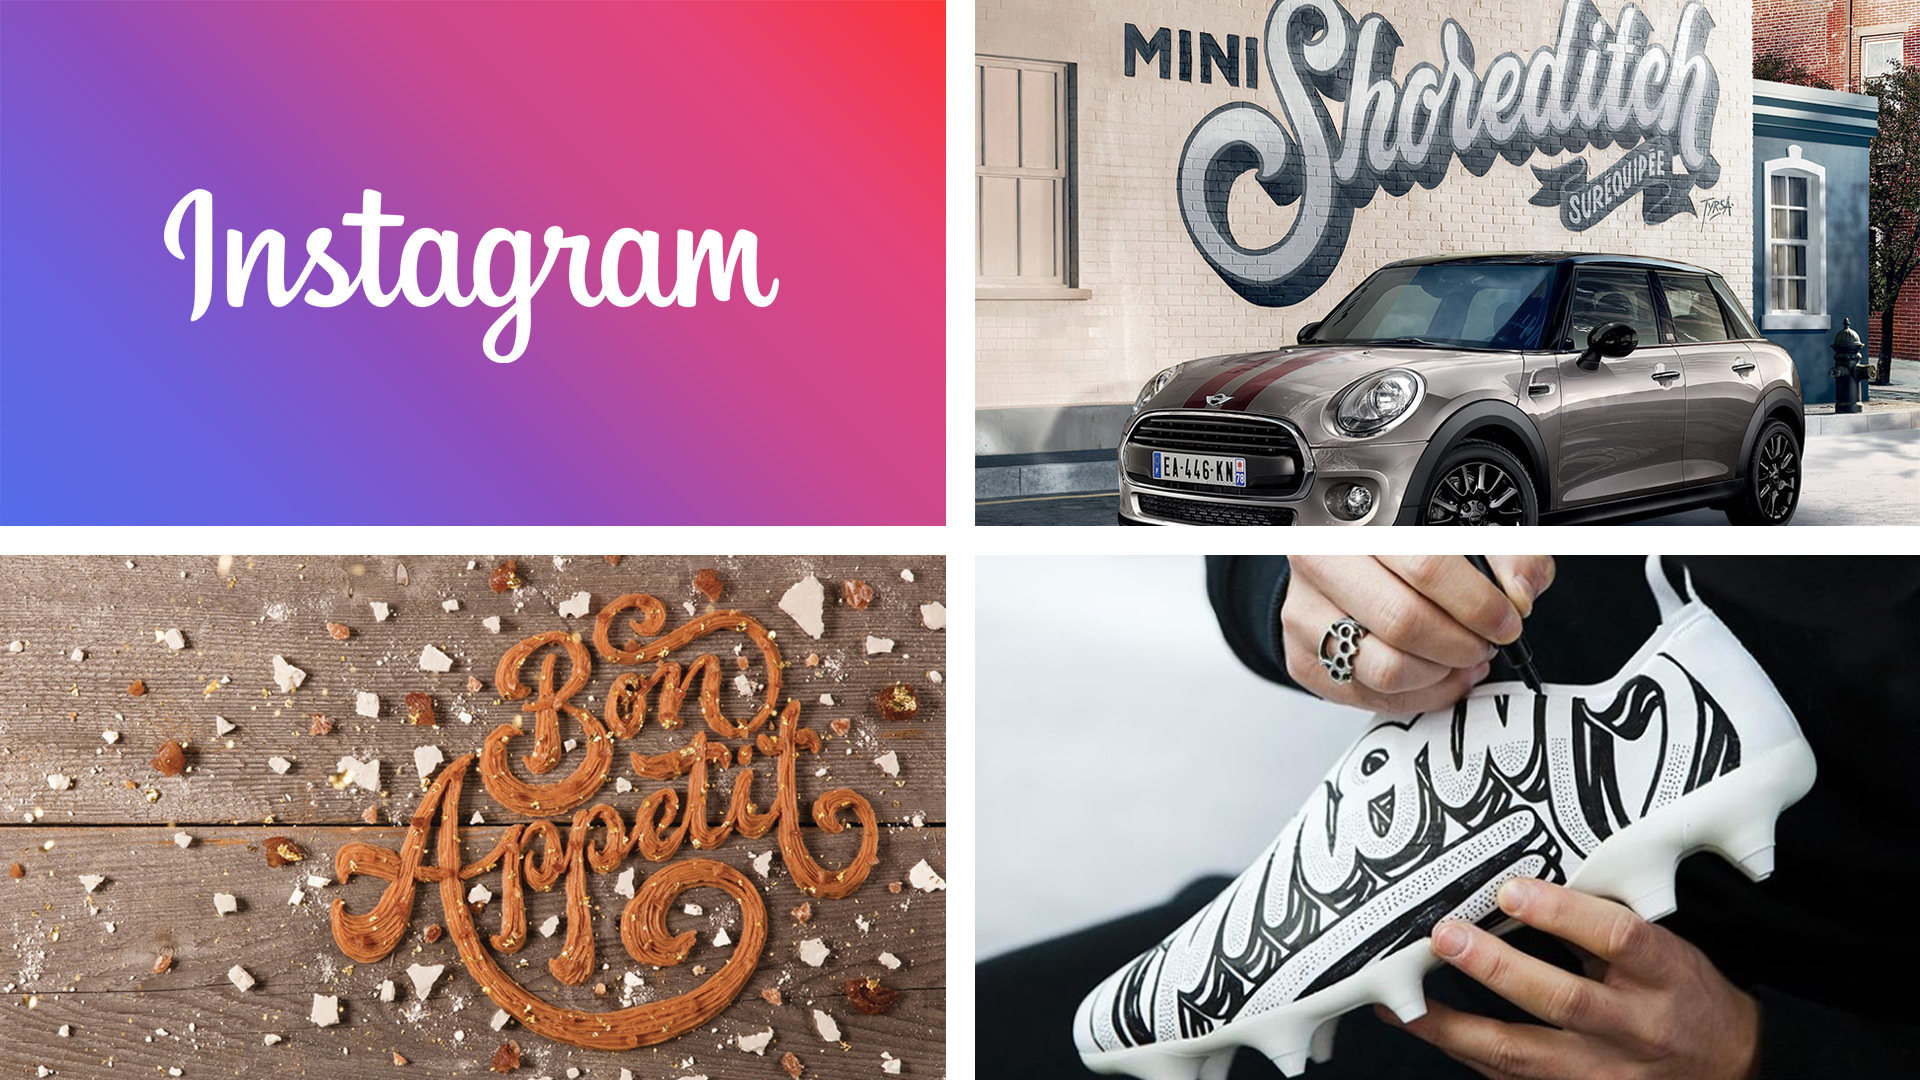 Examples of hand lettering by Instagram, Mini Cooper, Tyrsamisu and Nairone